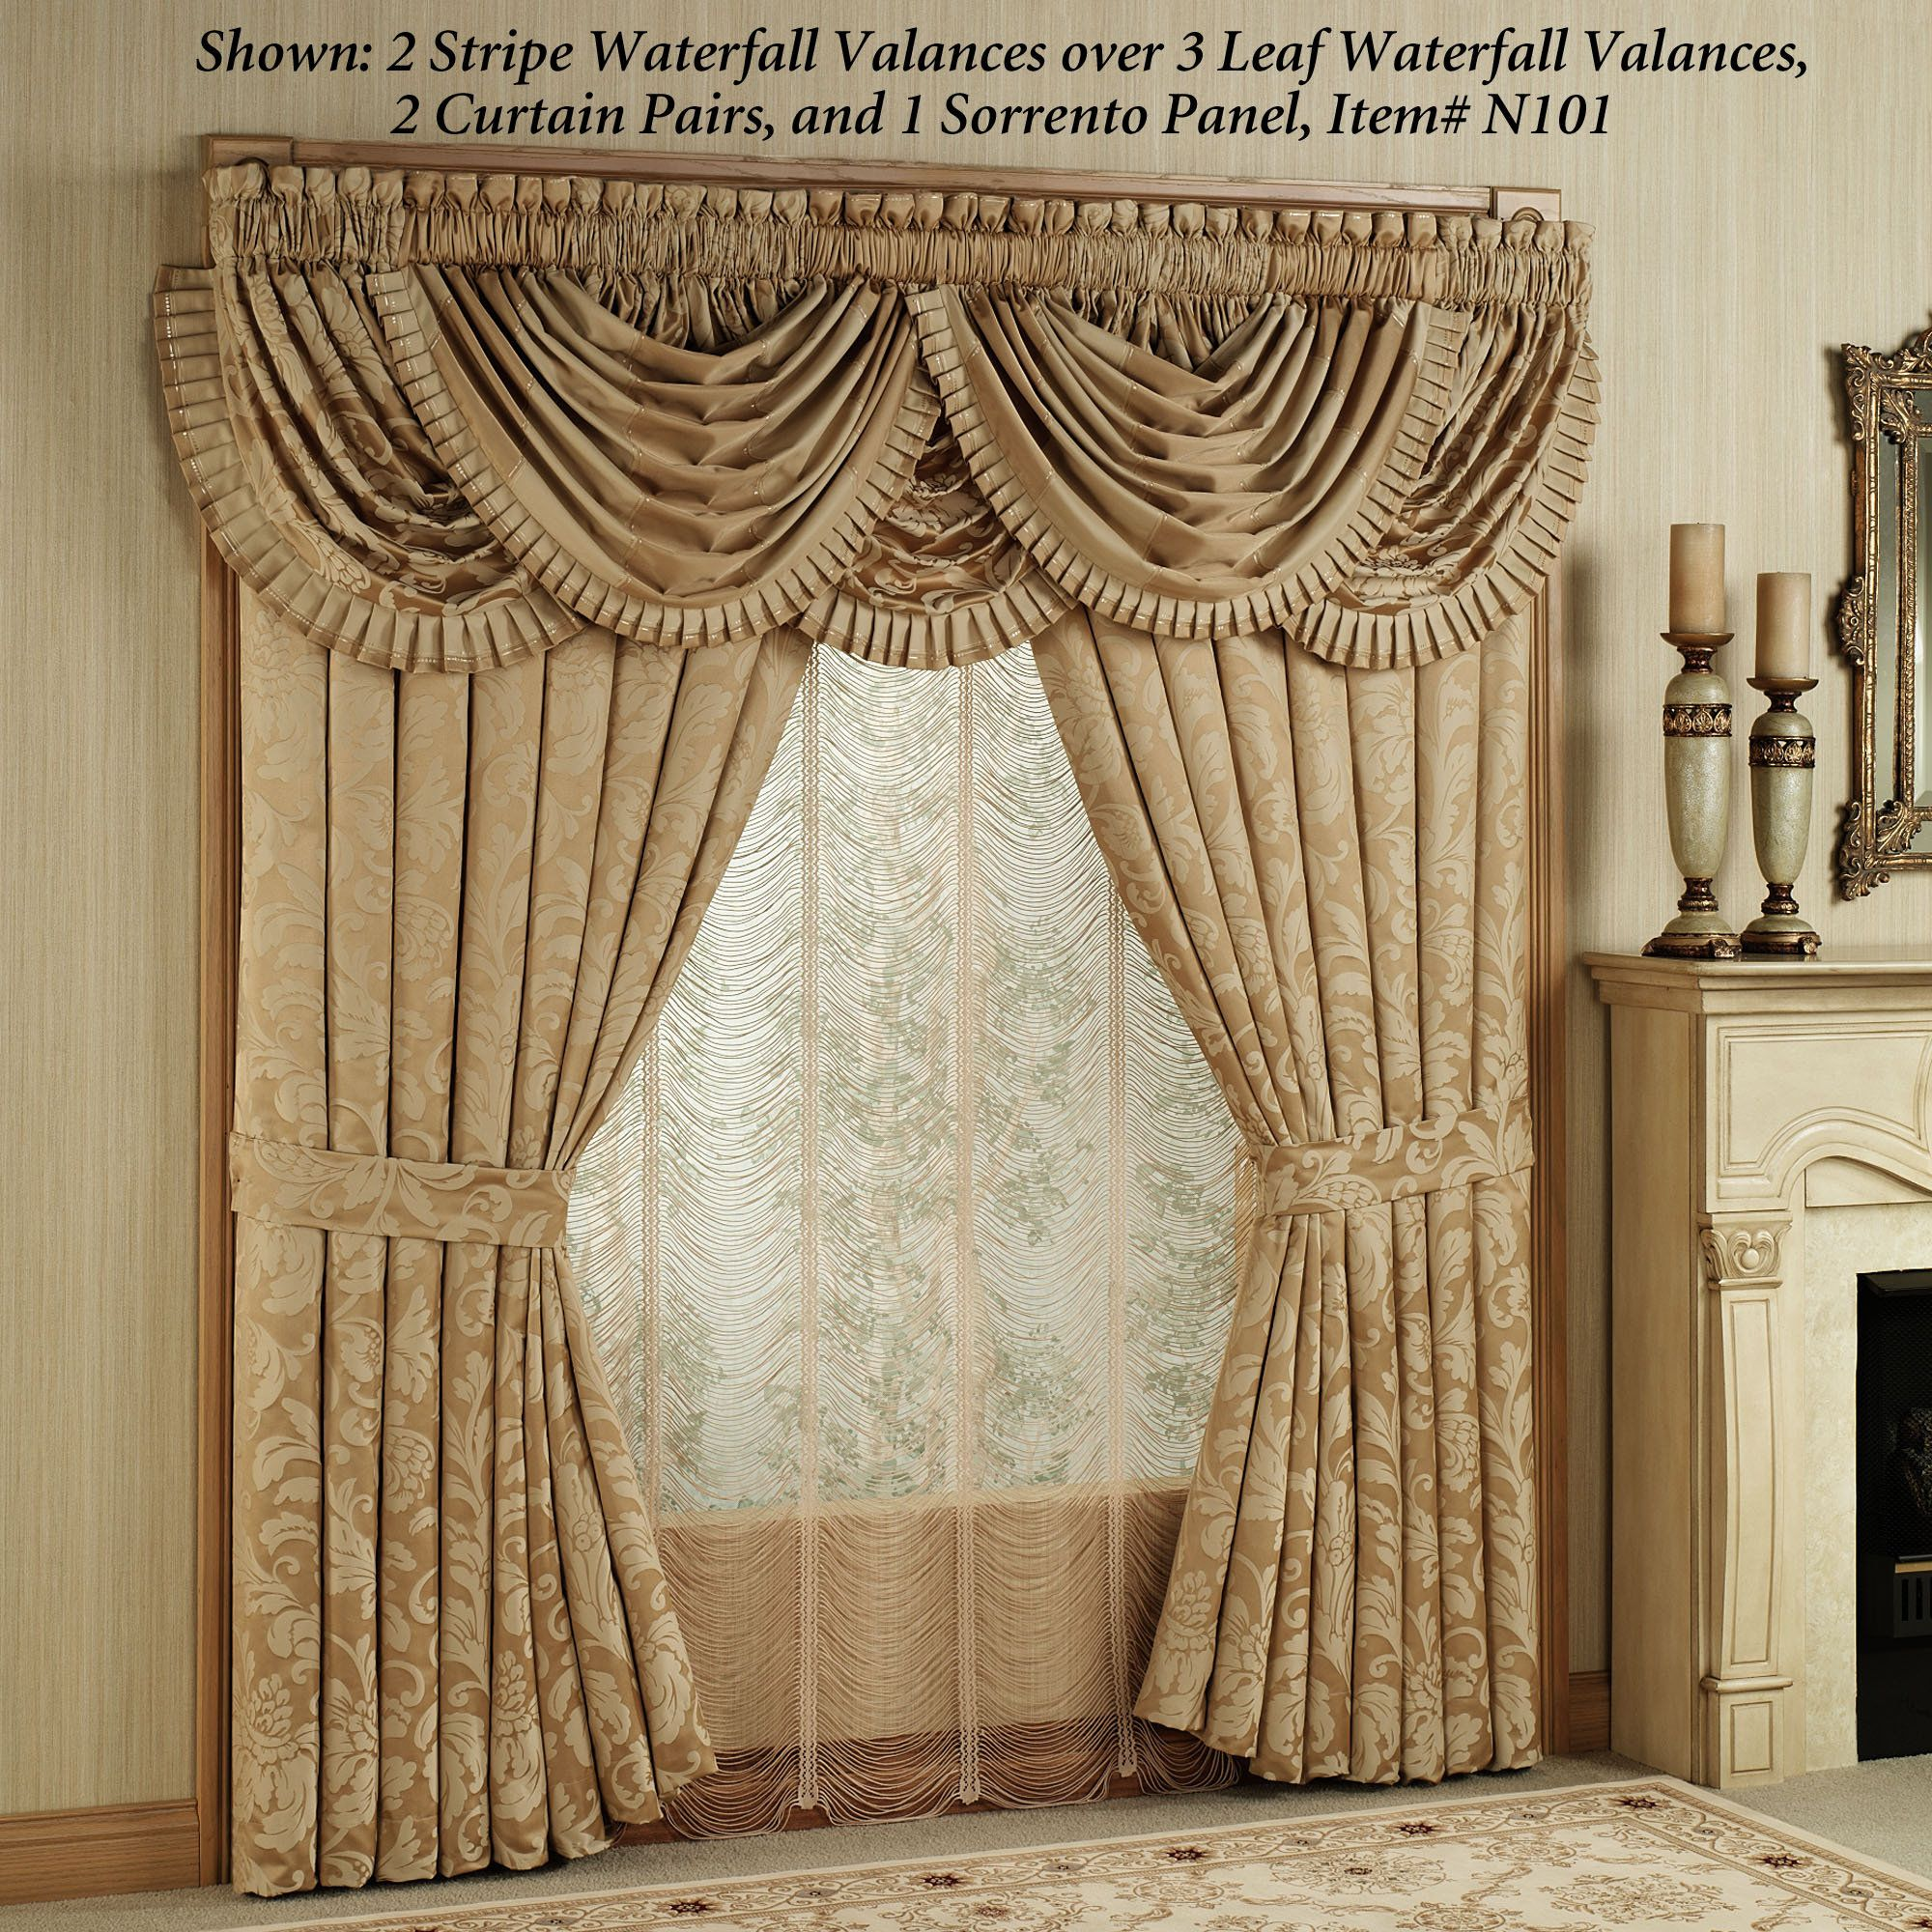 Curtains And Valances Home Regent Gold Leaf Waterfall Valance Antique Gold 42 X 33 Tende